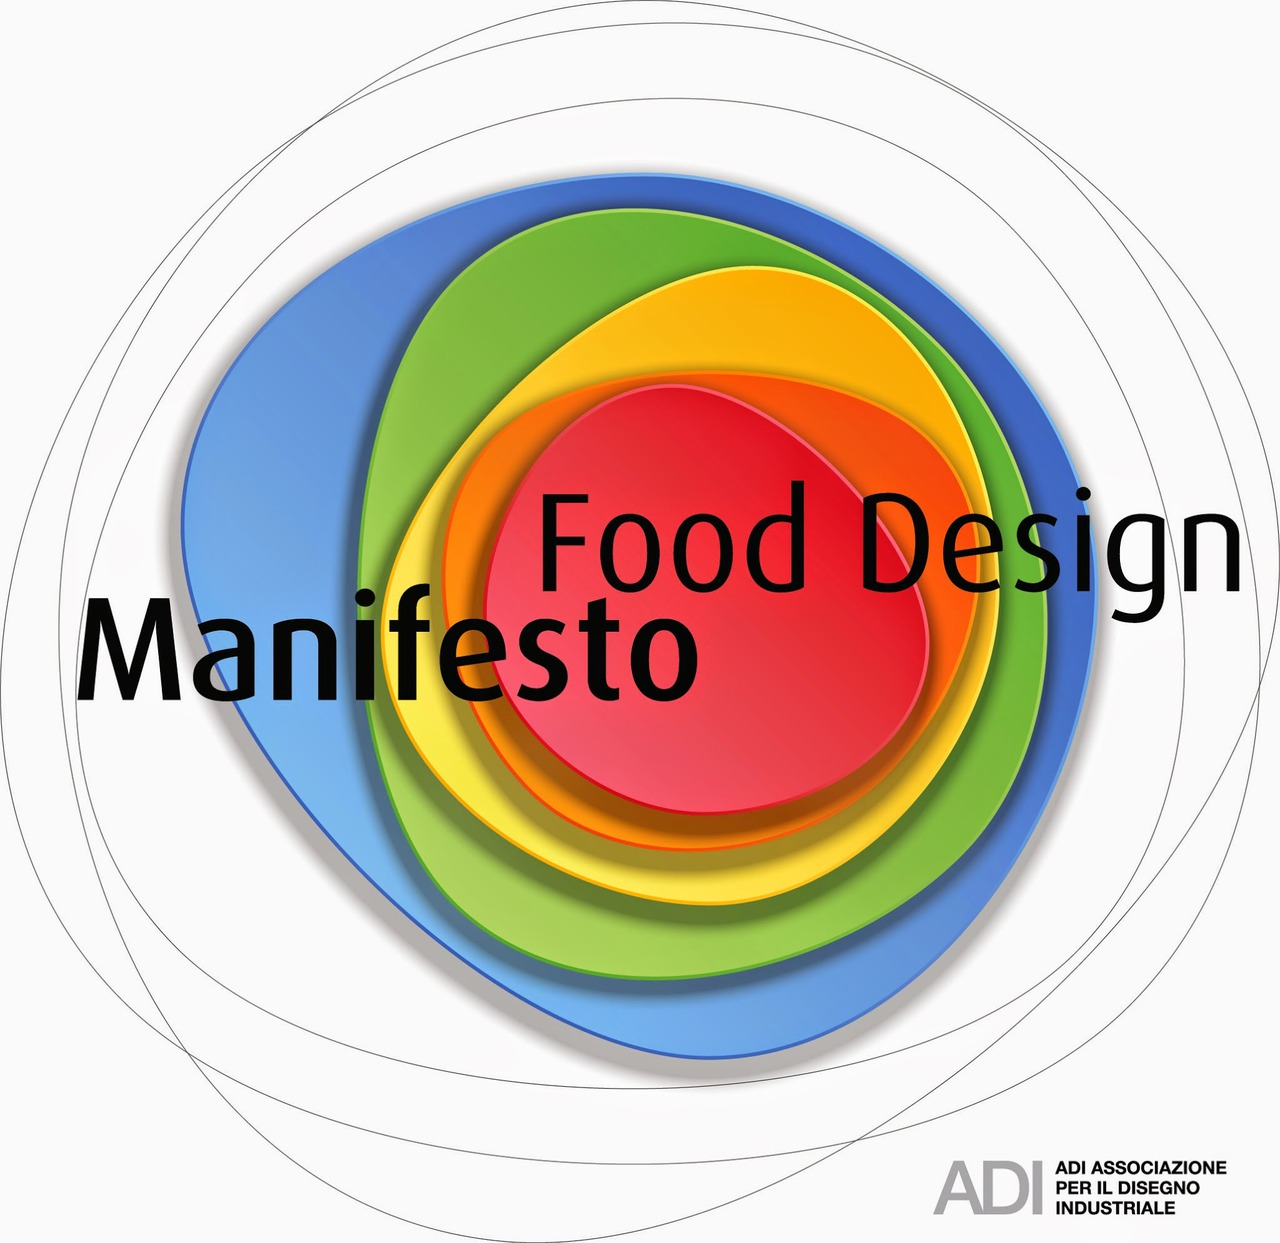 logo food design manifesto adi expo 2015